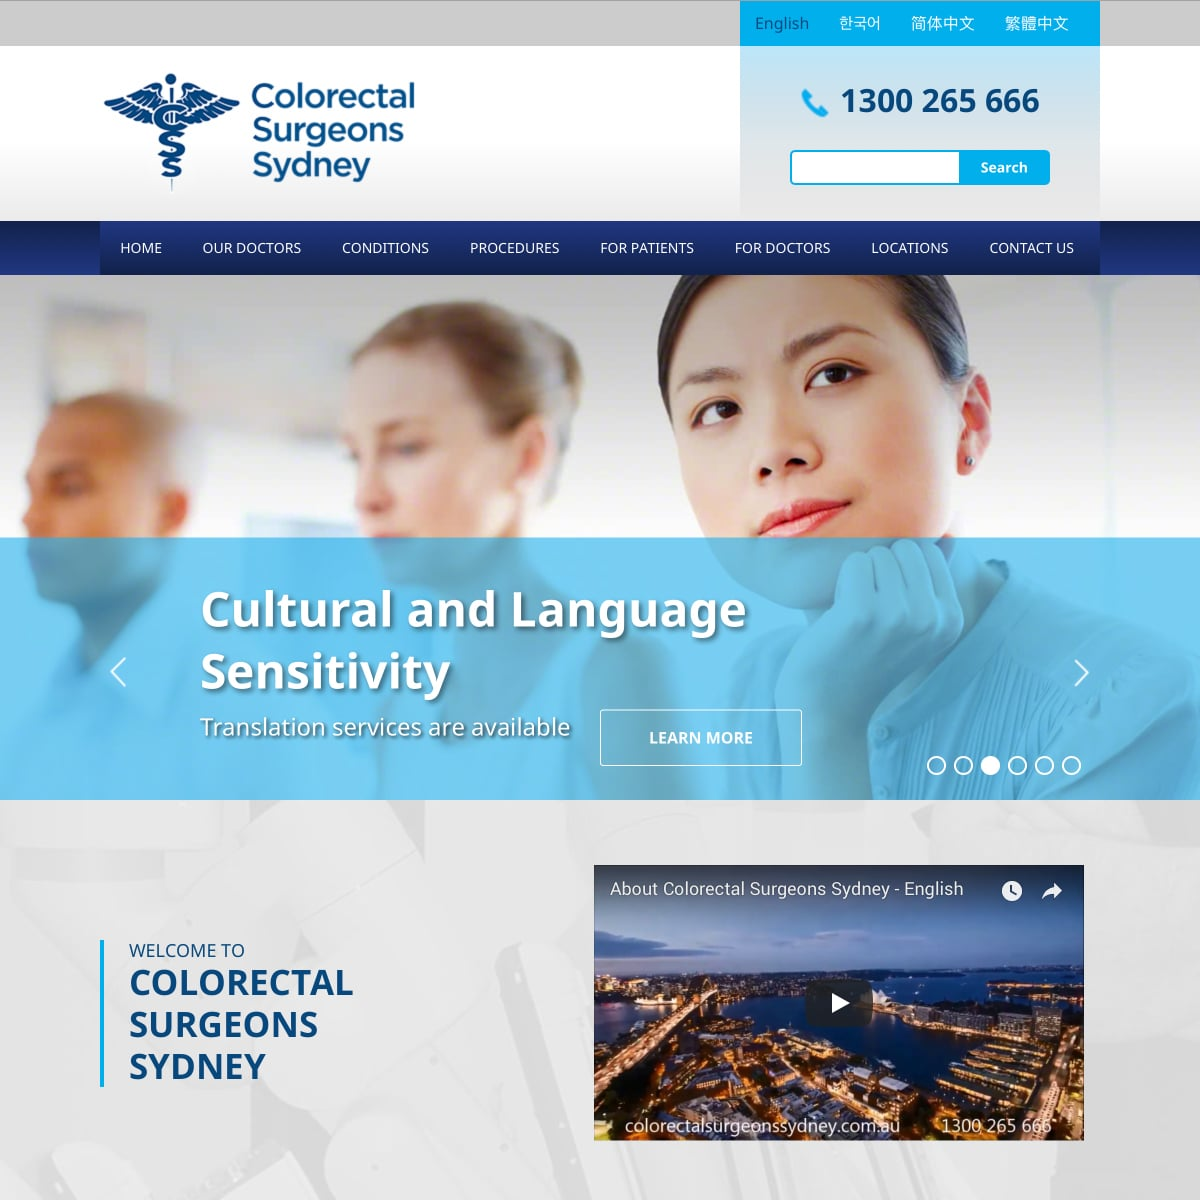 Homepage – showing the default english language version